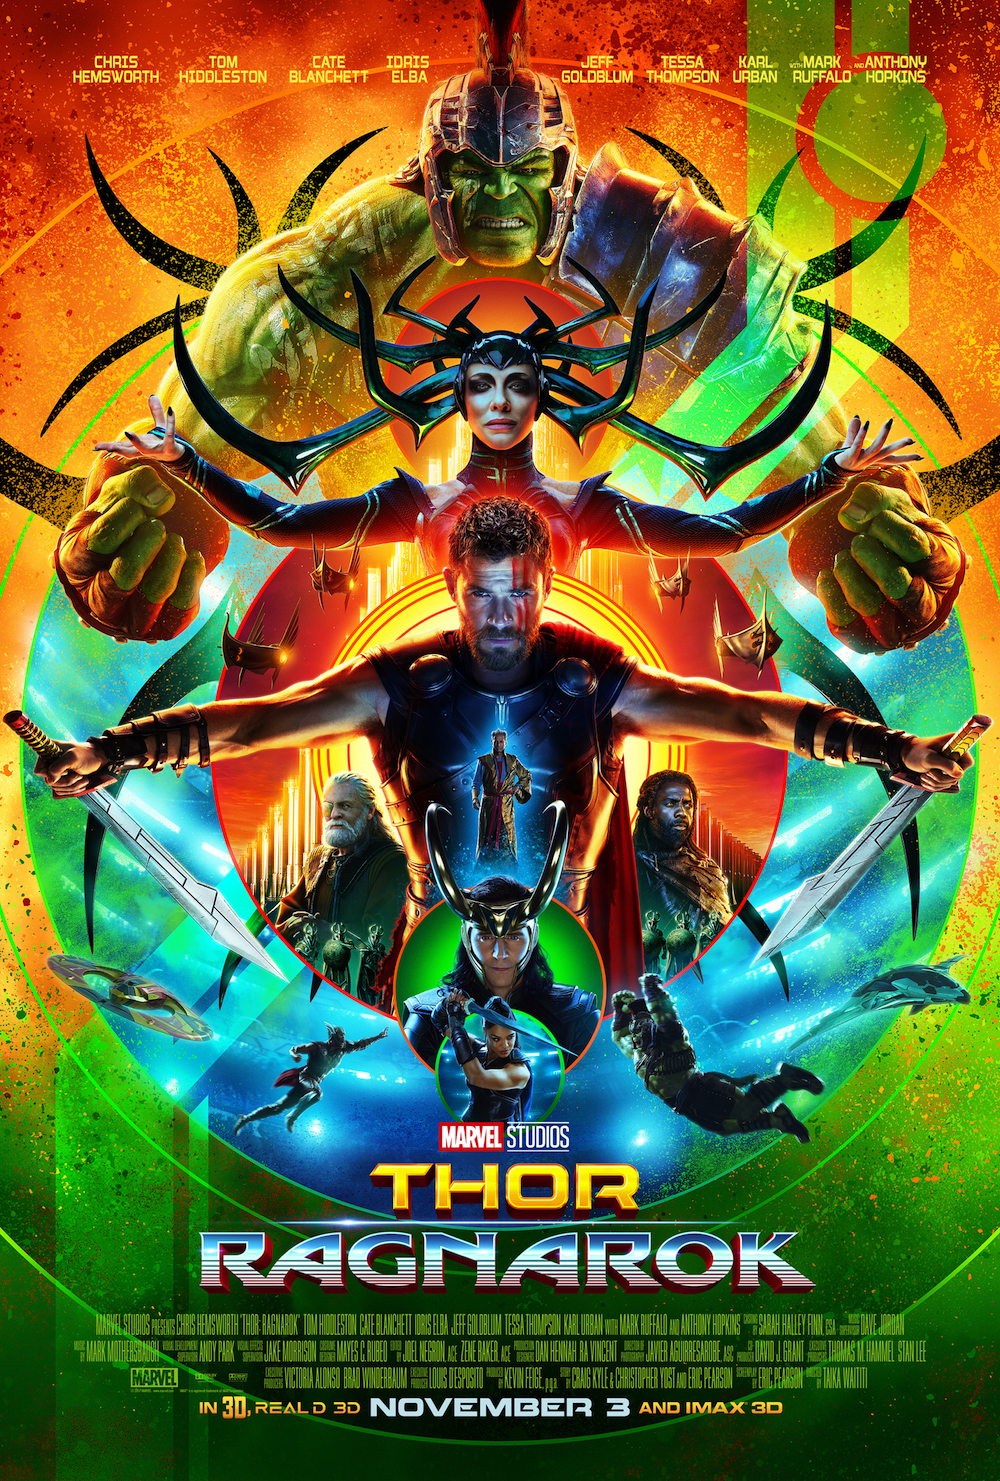 Marvel Reveals New Posters For Black Panther And Thor